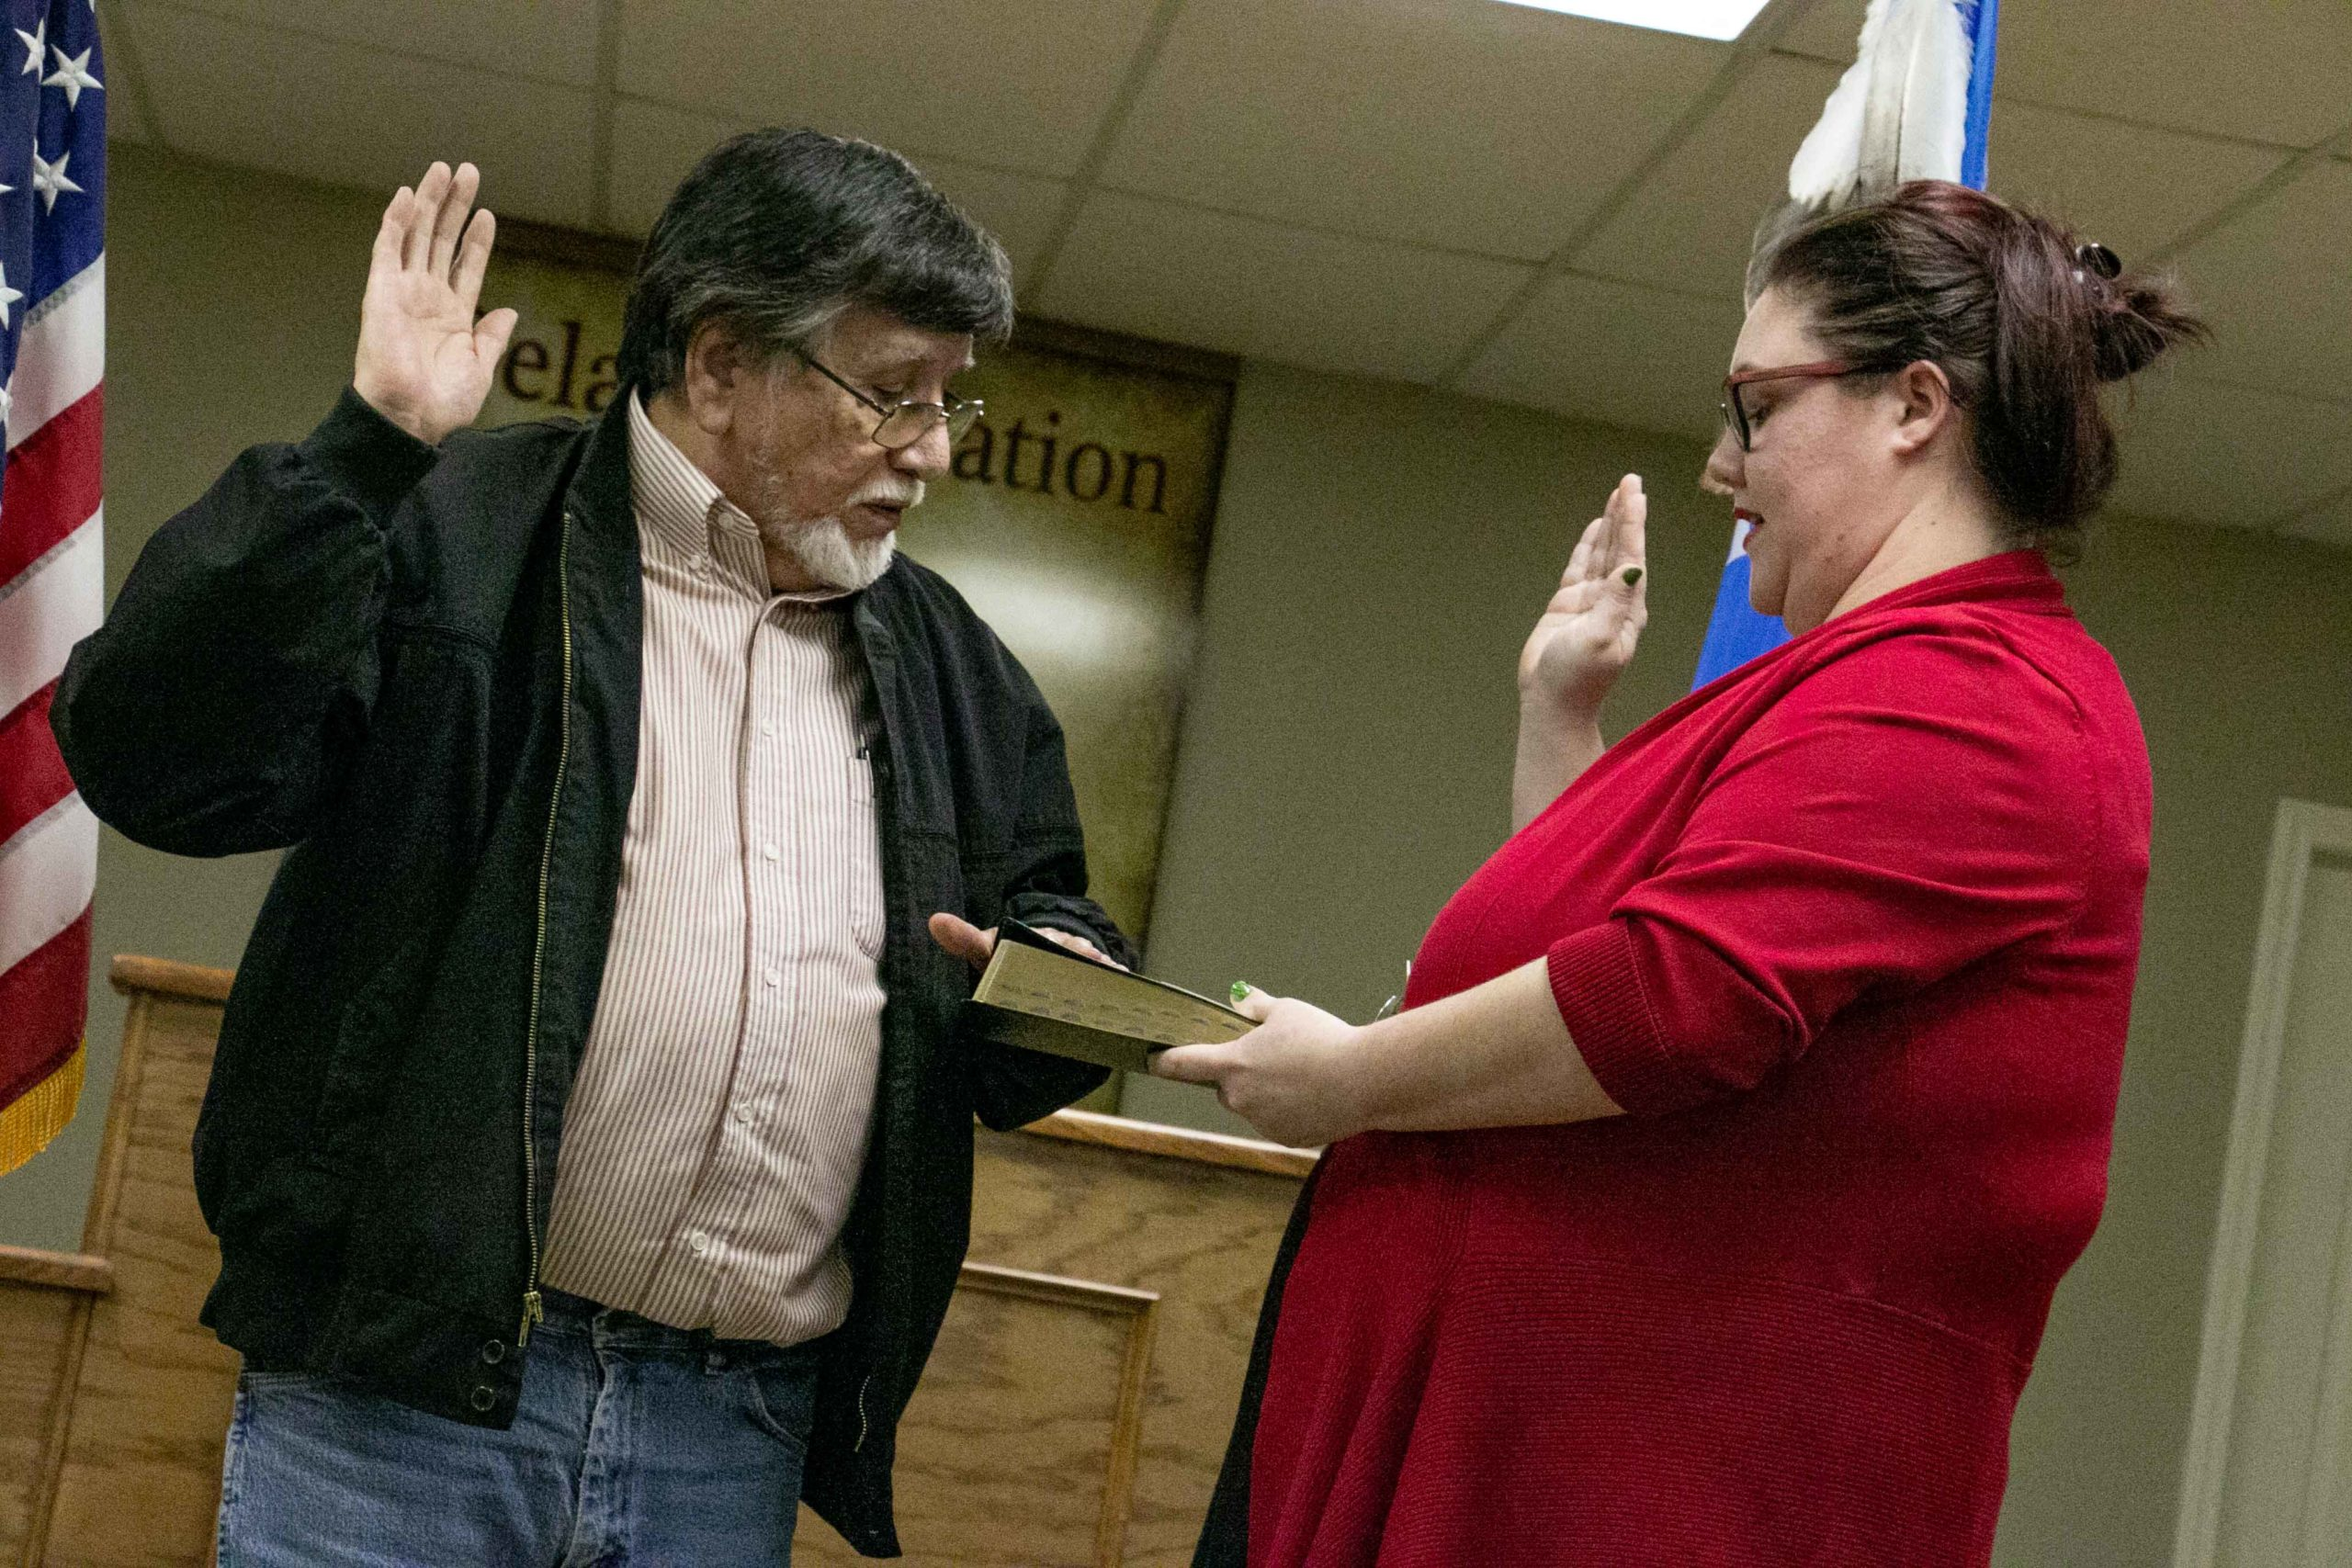 Delaware Nation Welcomes New Executive Committee Person During Swearing-In Ceremony